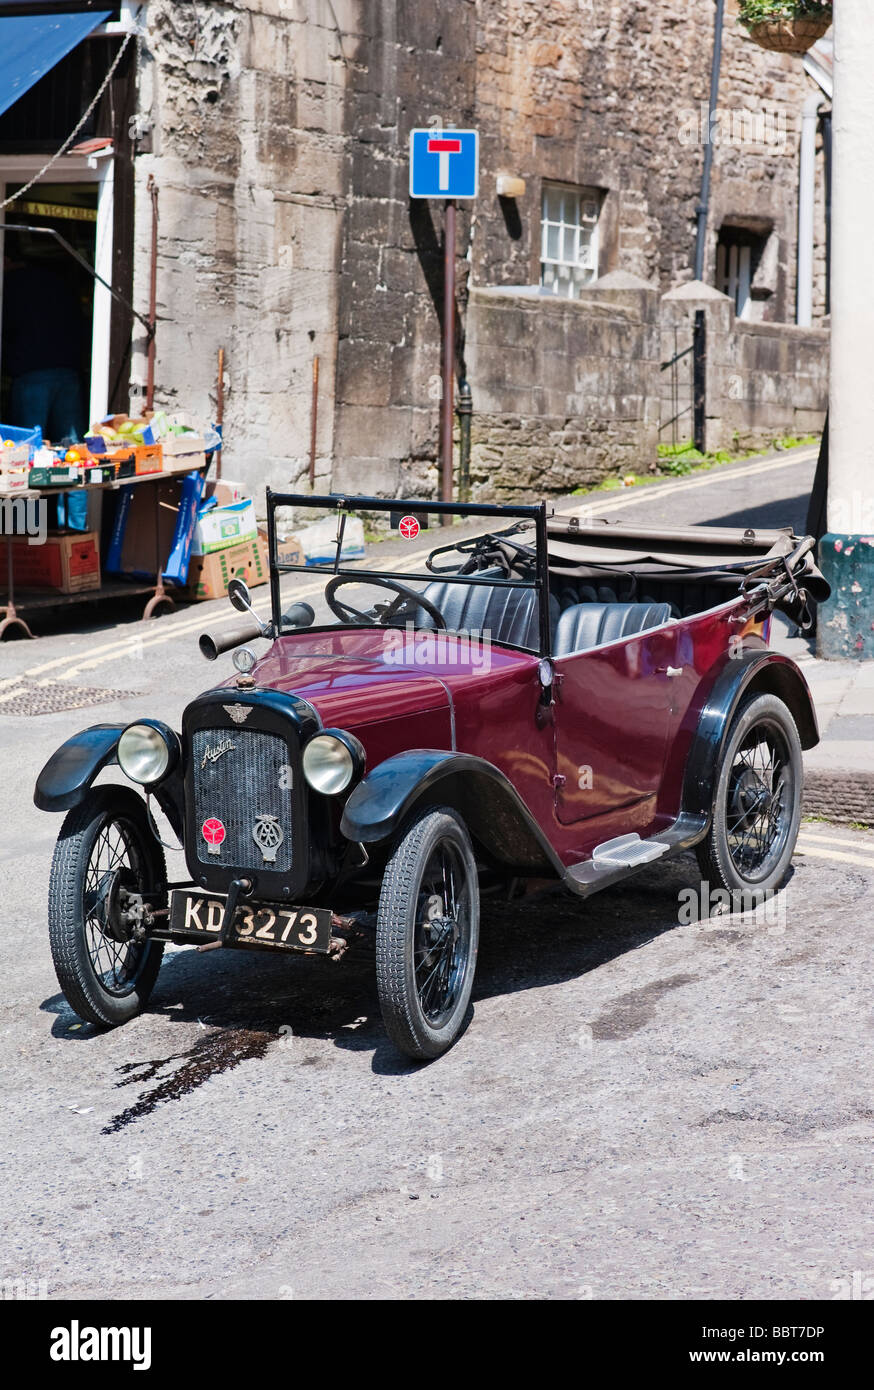 Old Austin Seven open top tourer car in an English town Stock Photo